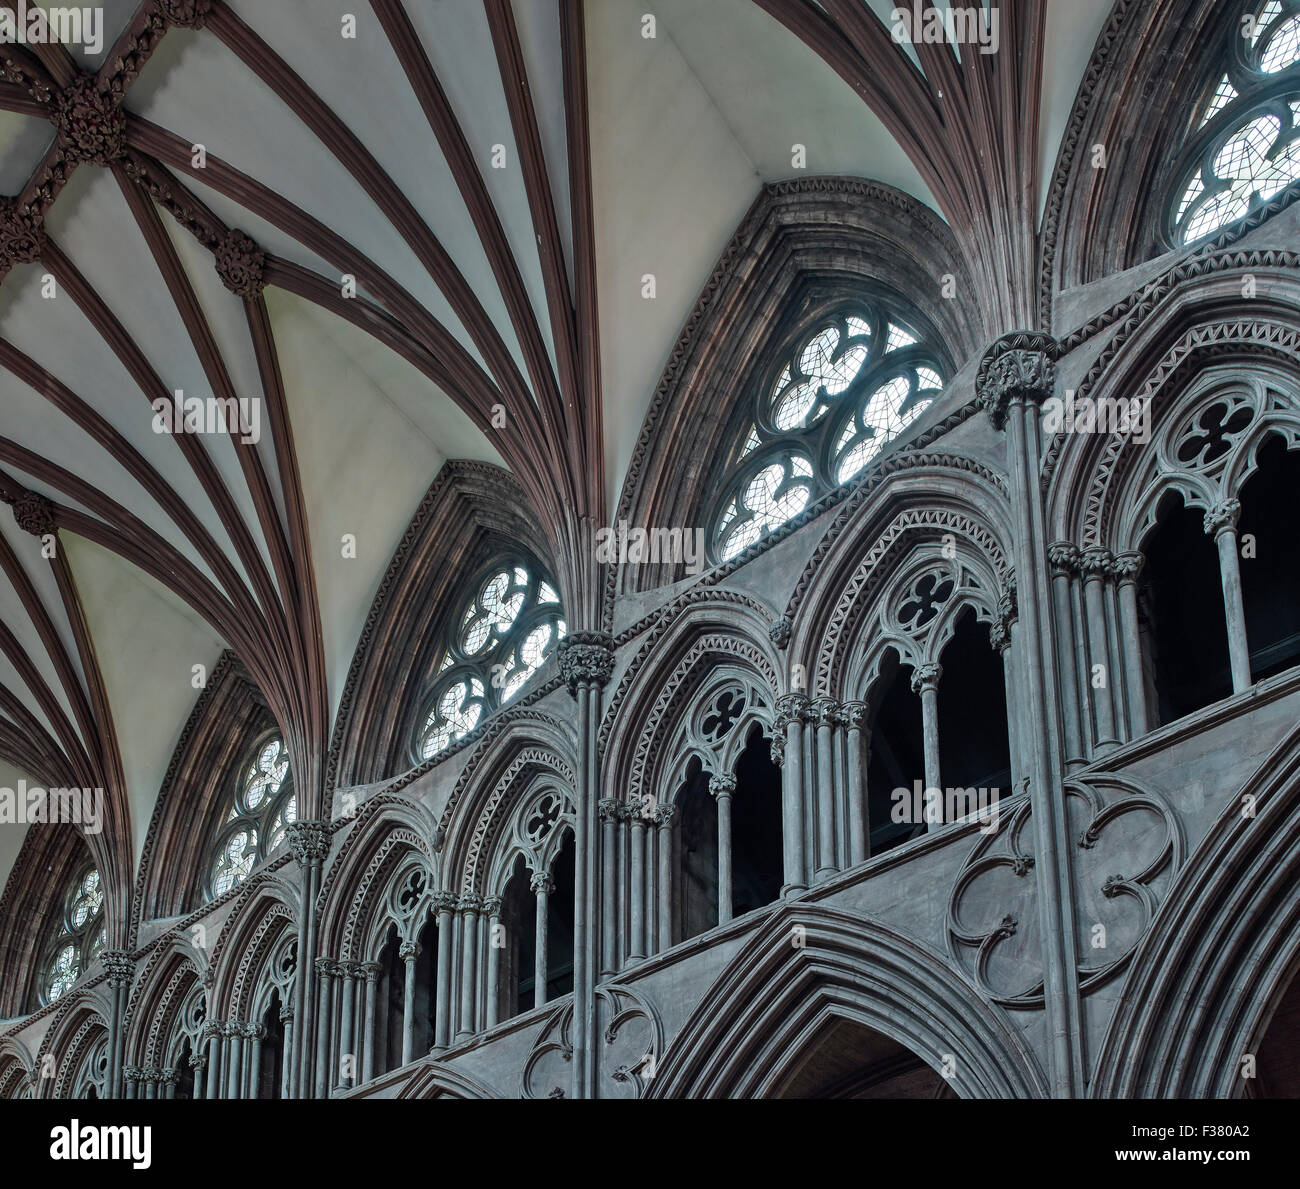 Lichfield Cathedral Nave Arcade Clerestory